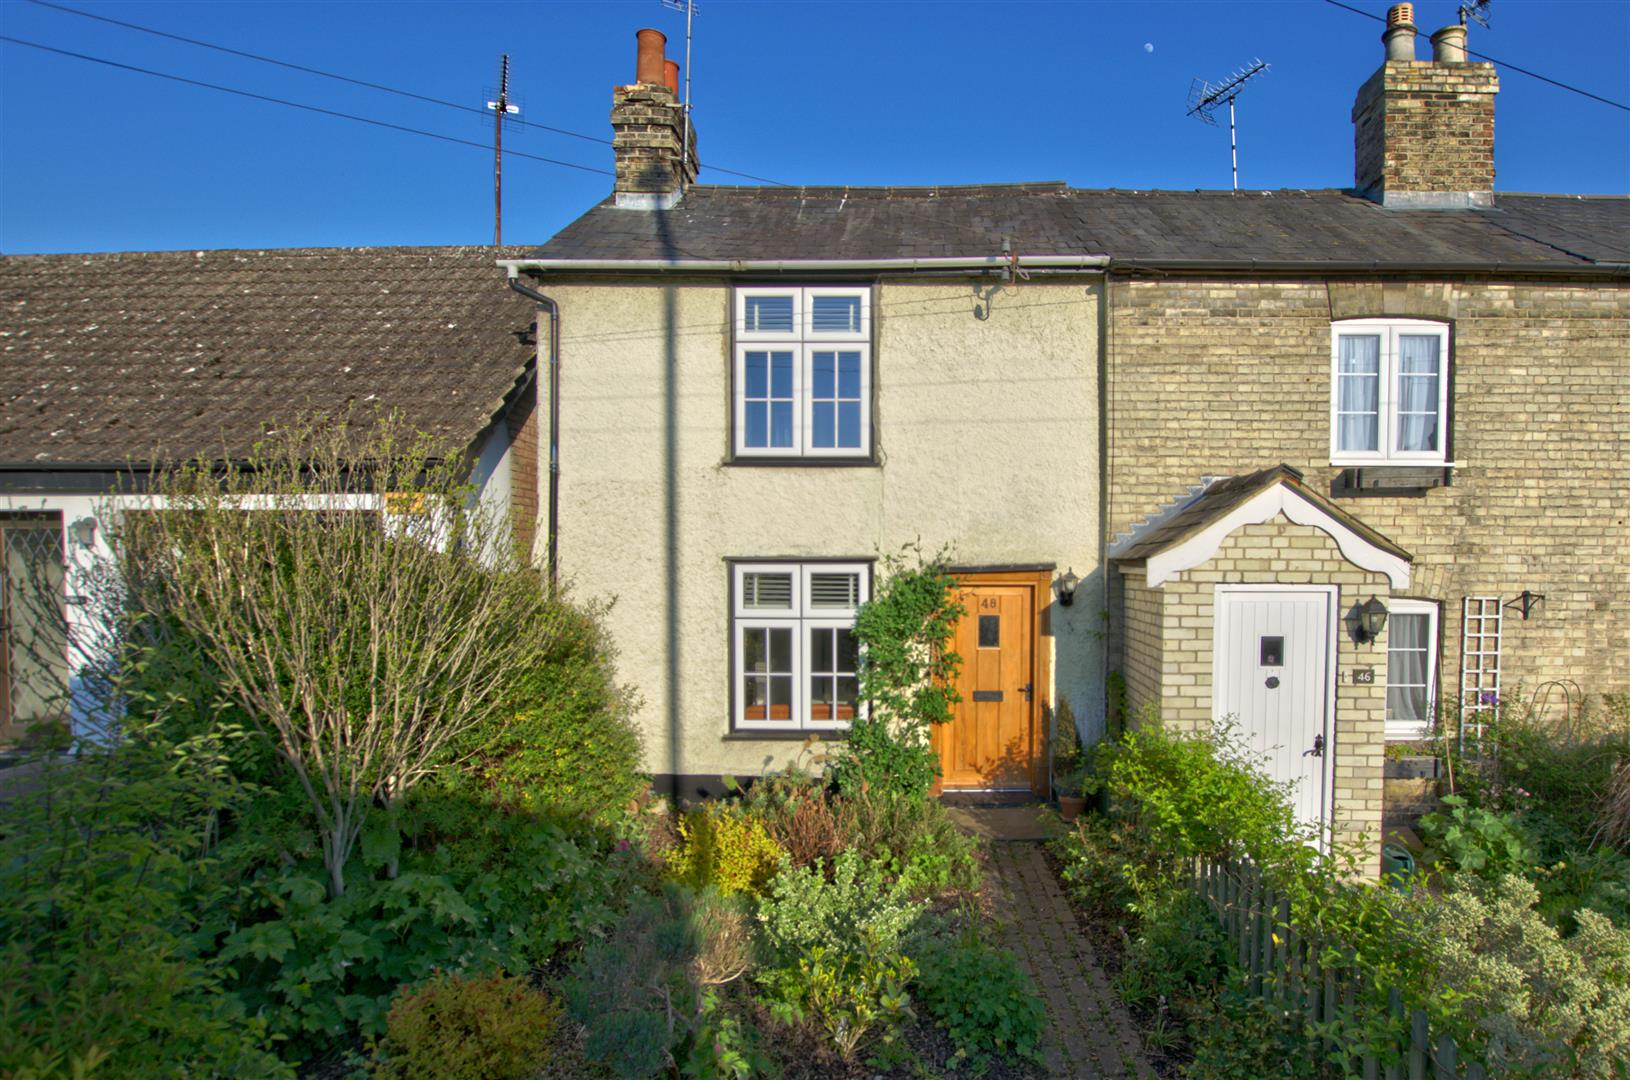 48 for sale in Harston